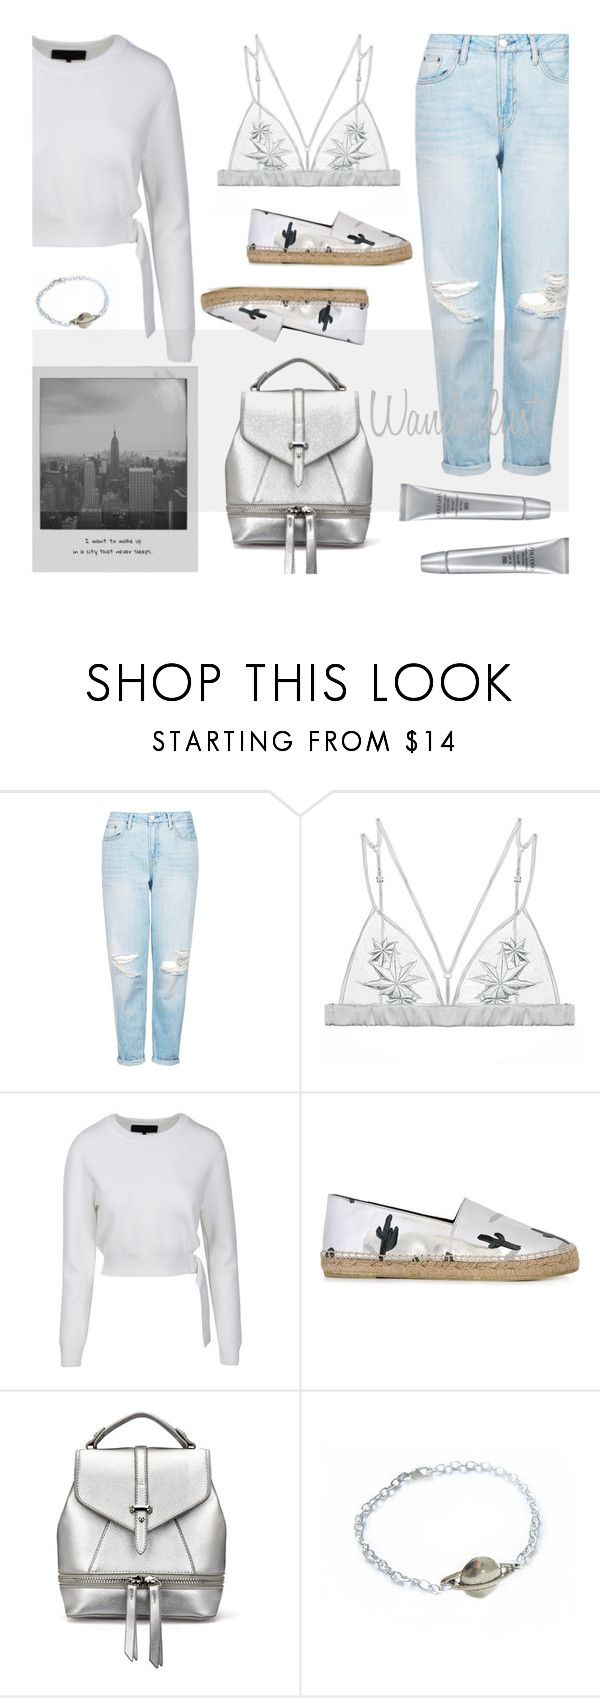 """Wanderlust"" by alongcametwiggy ❤ liked on Polyvore featuring Topshop, Fleur of England, Kendall + Kylie, Kenzo, Meggie and Shiseido"